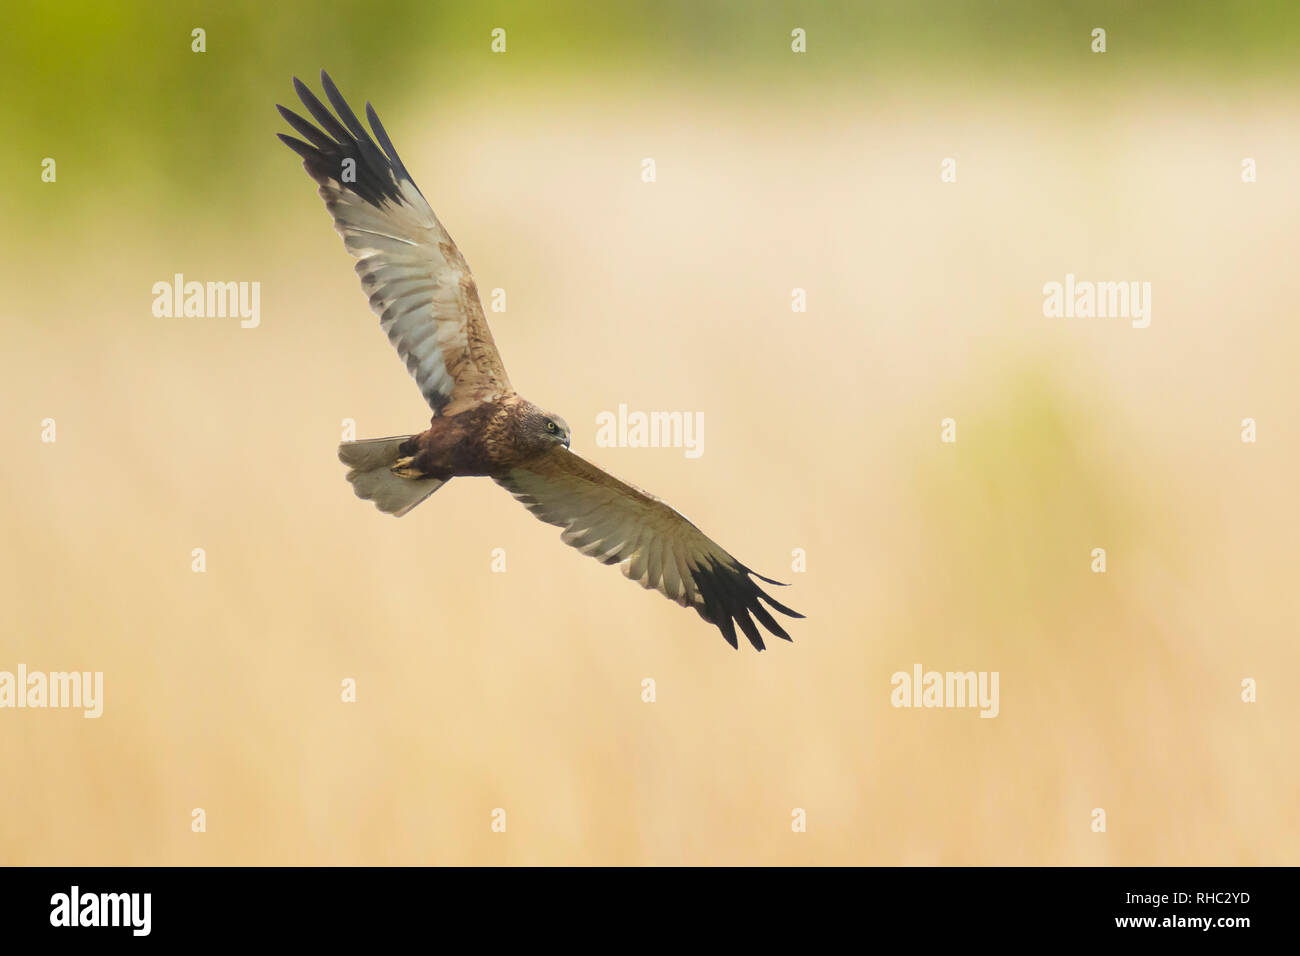 Male Western marsh harrier, Circus aeruginosus, bird of prey in flight searching and hunting above a field Stock Photo